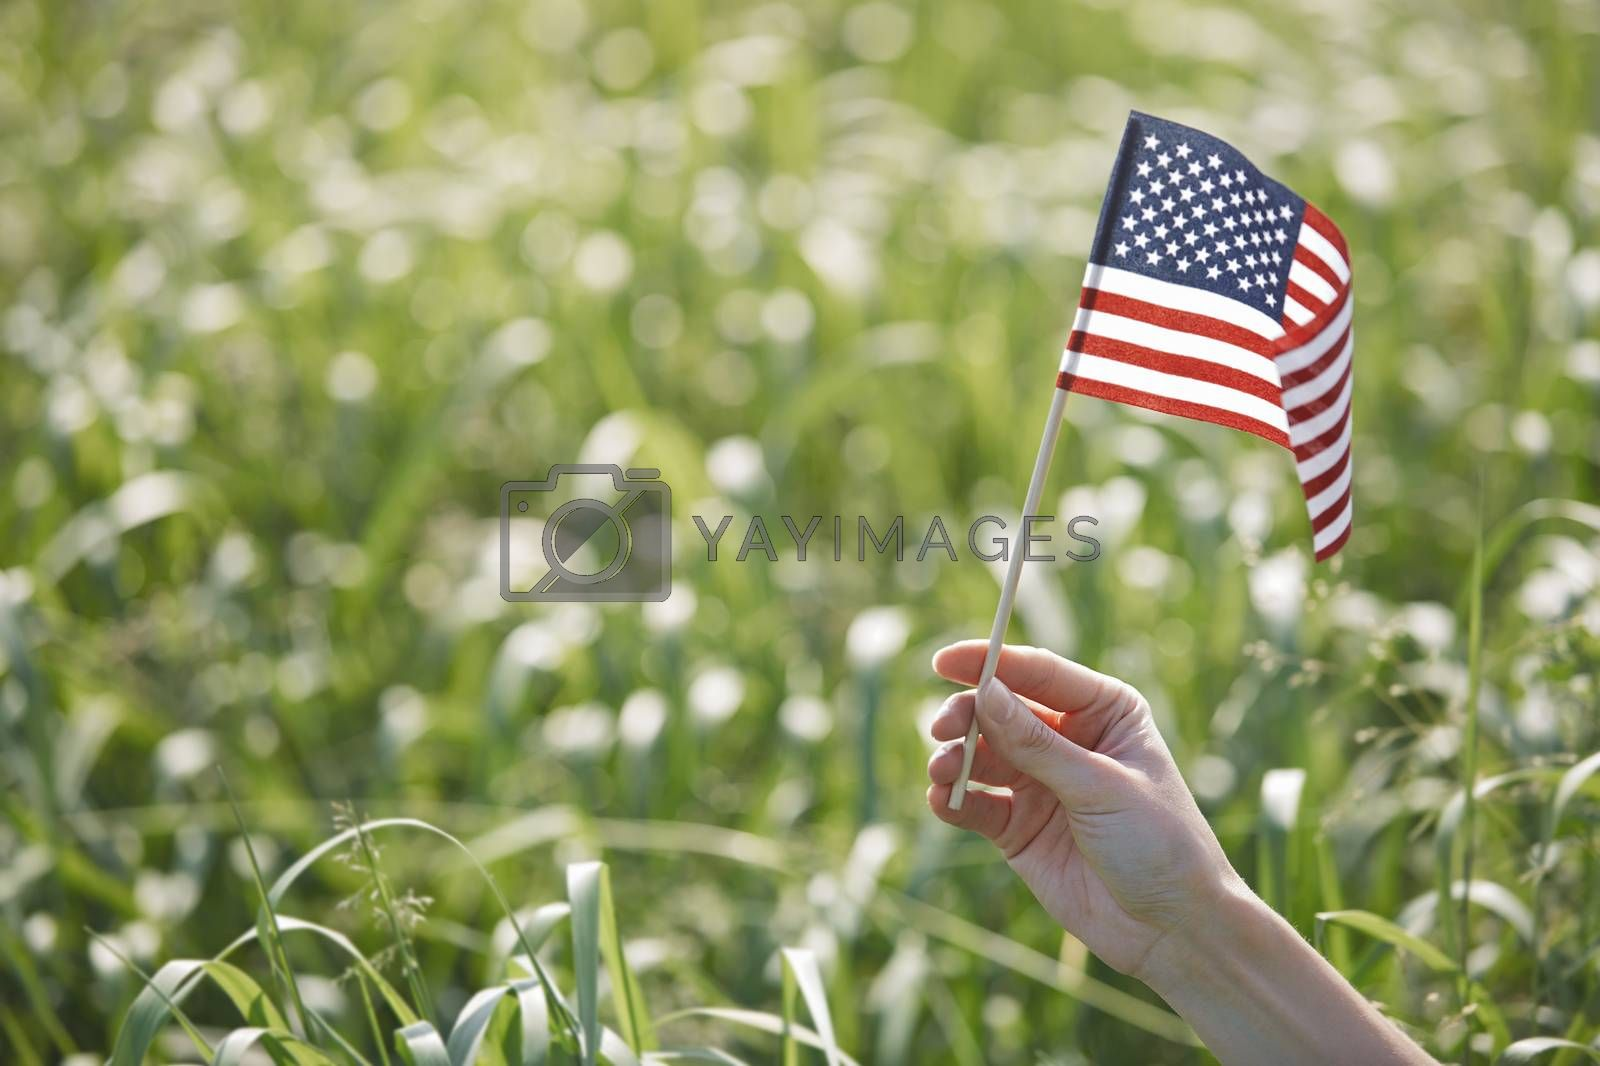 Hand of woman holding US flag in a grassland